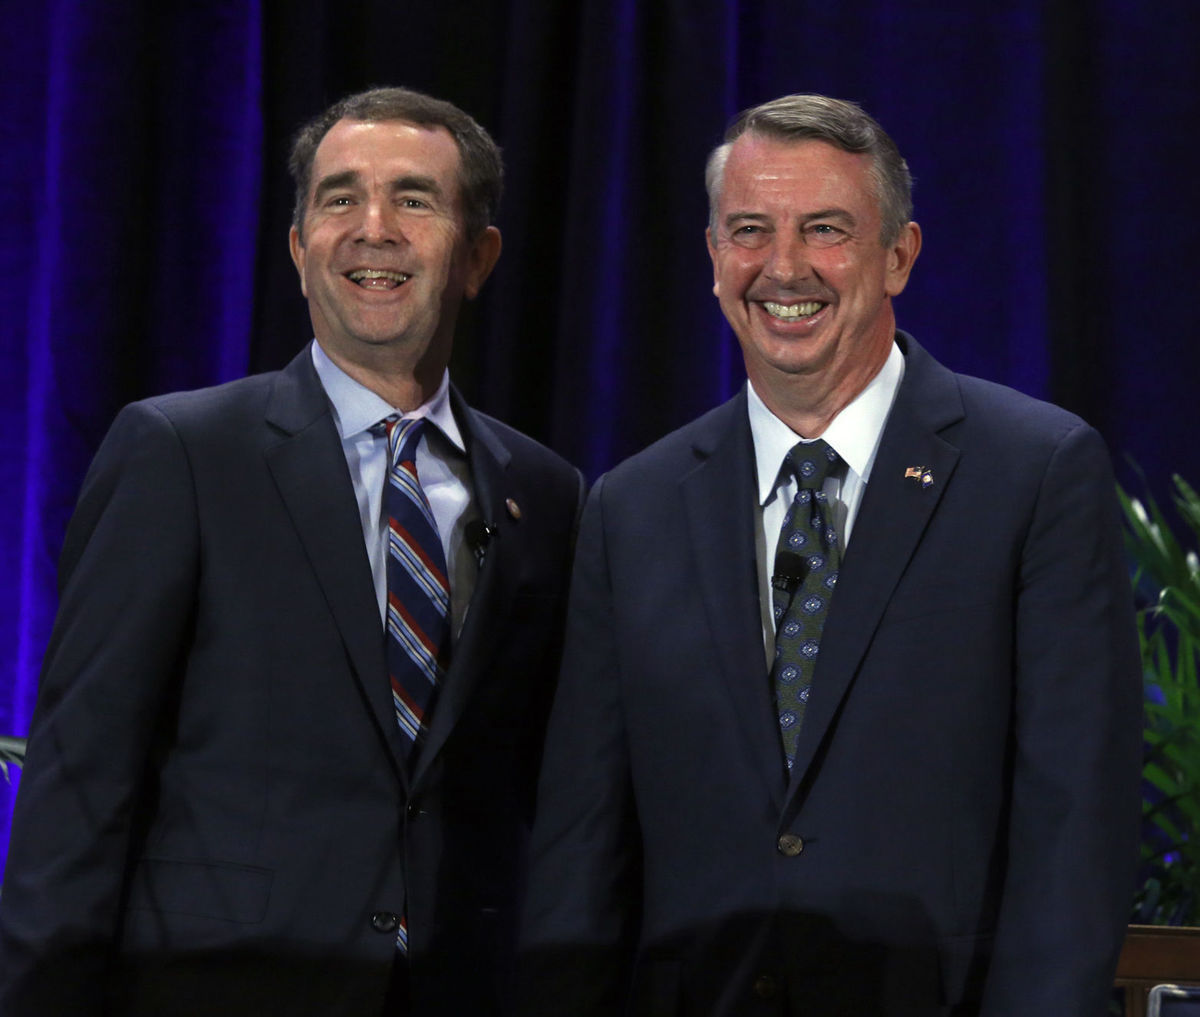 Democrat Ralph Northam Maintains Lead Over Republican Ed Gillespie in New Poll""